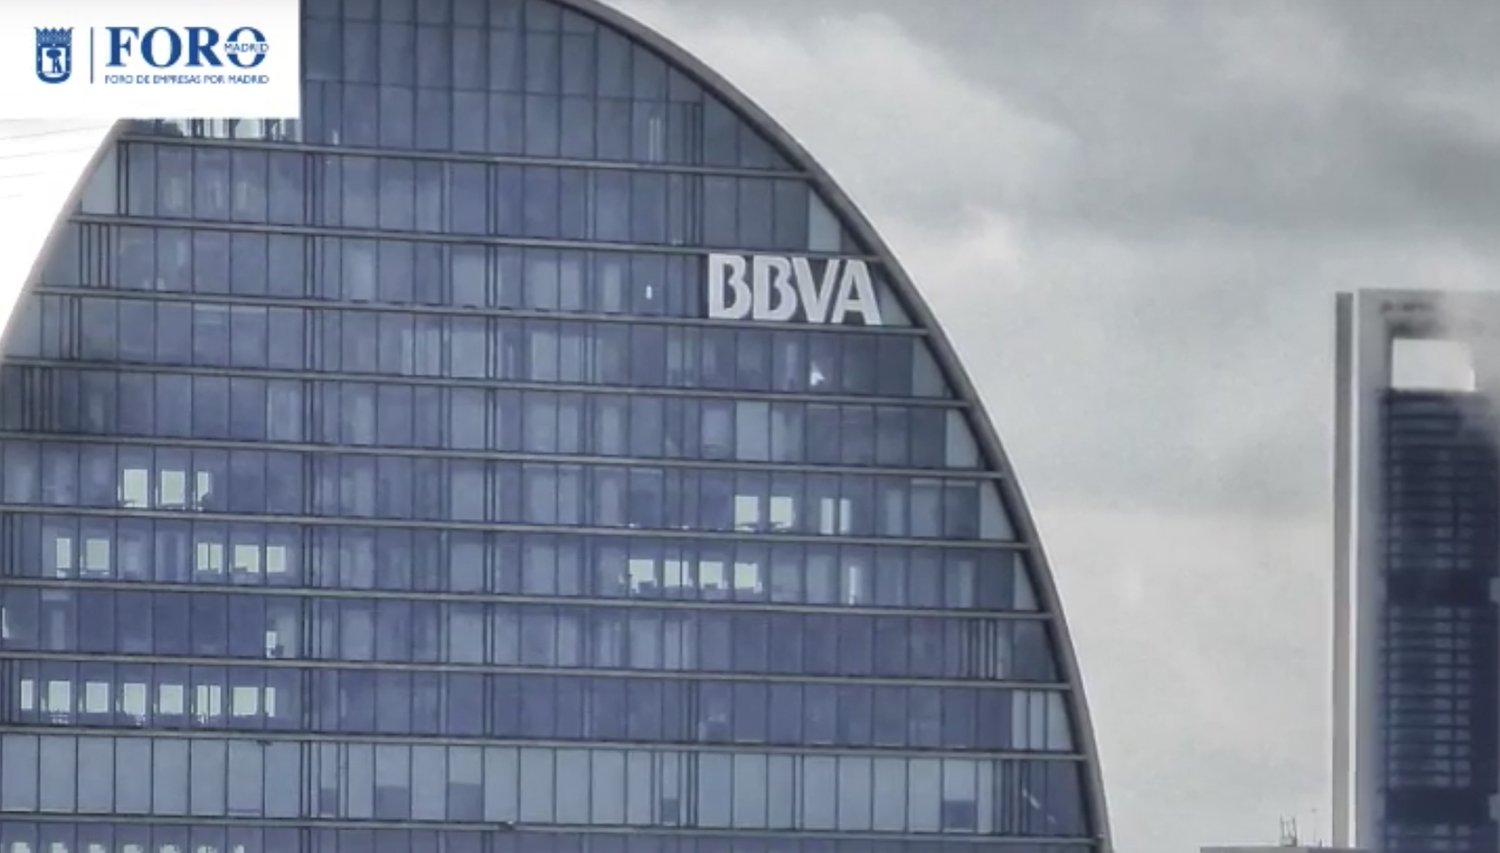 Bbva abre macro oficina en silicon valley espacio de for Oficinas bbva madrid capital